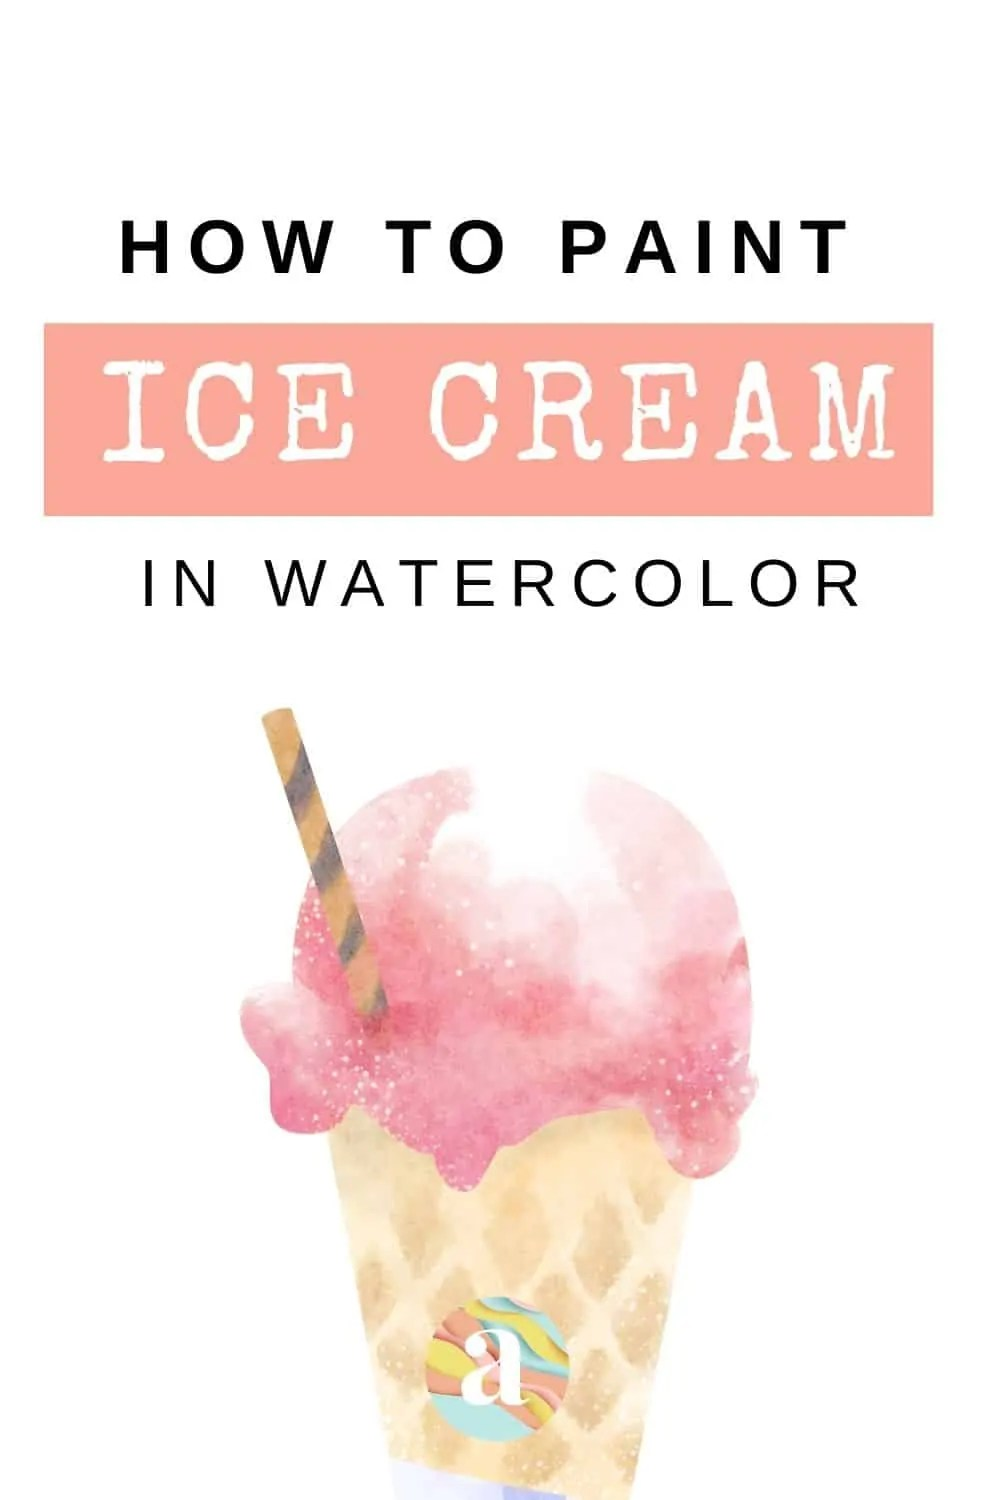 10 Ideas for Your Next Watercolor Painting 5